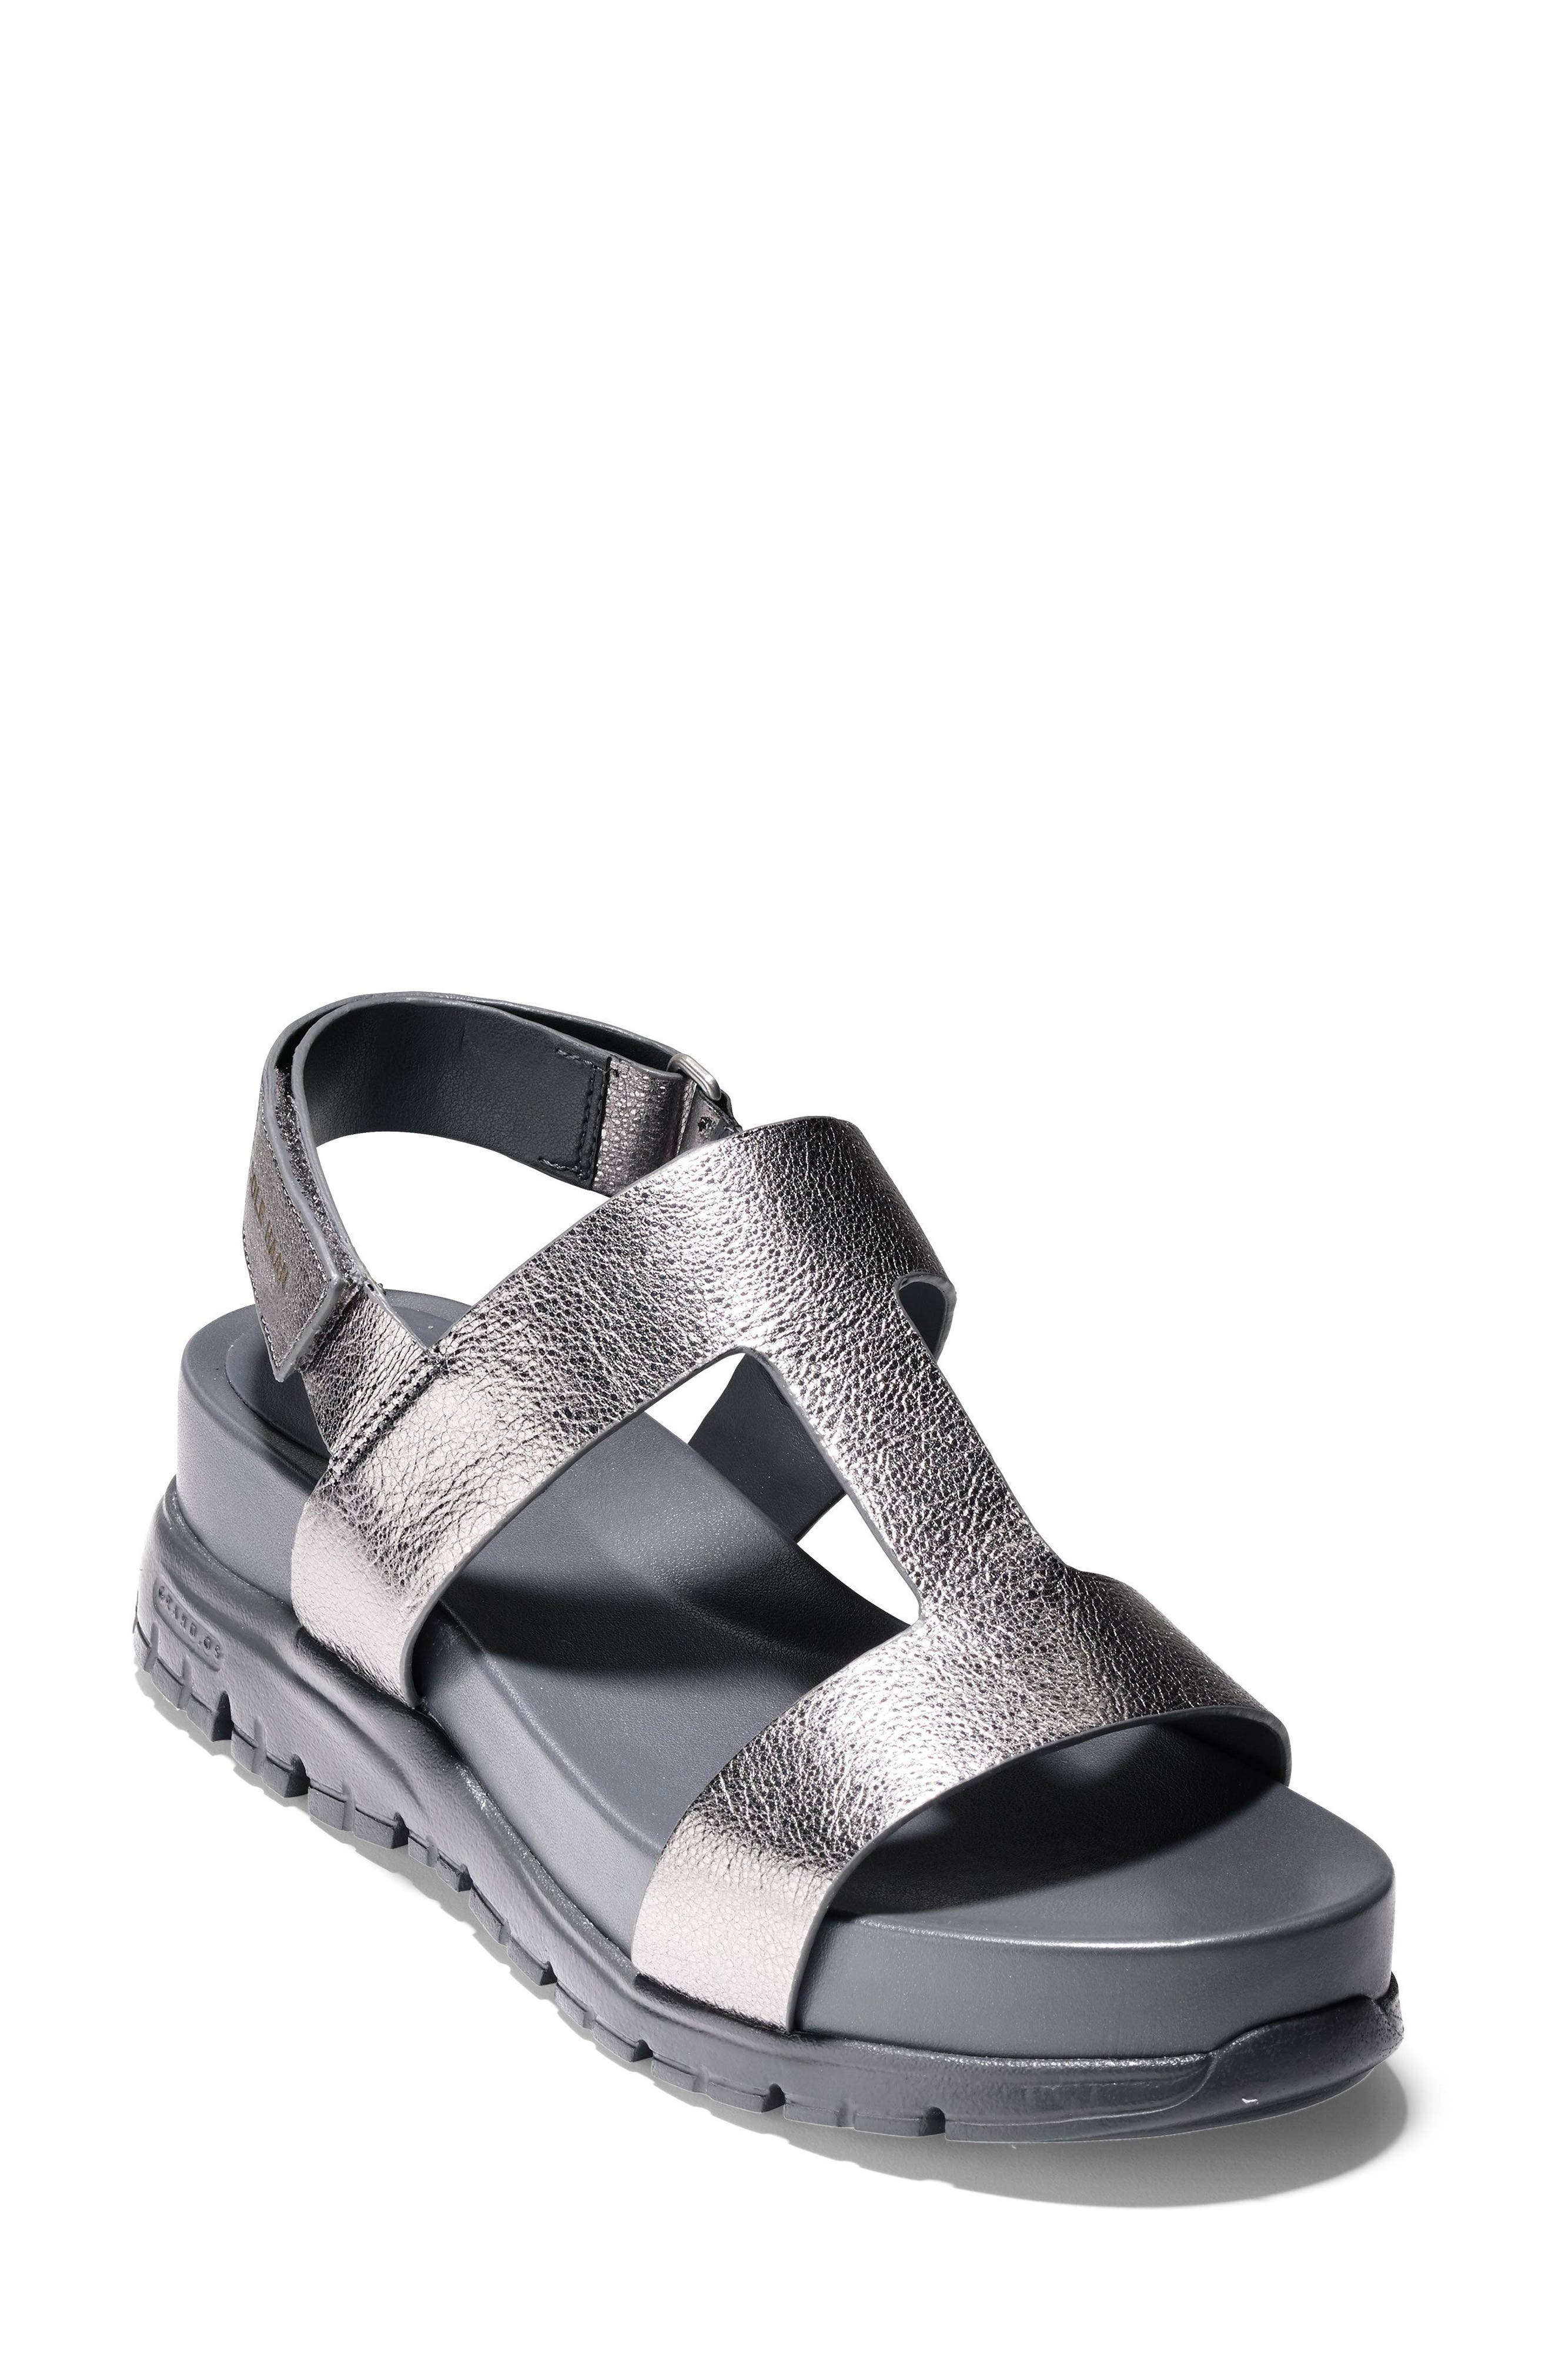 ZeroGrand T-Strap Sandal,                             Main thumbnail 1, color,                             Anthracite Metallic Leather